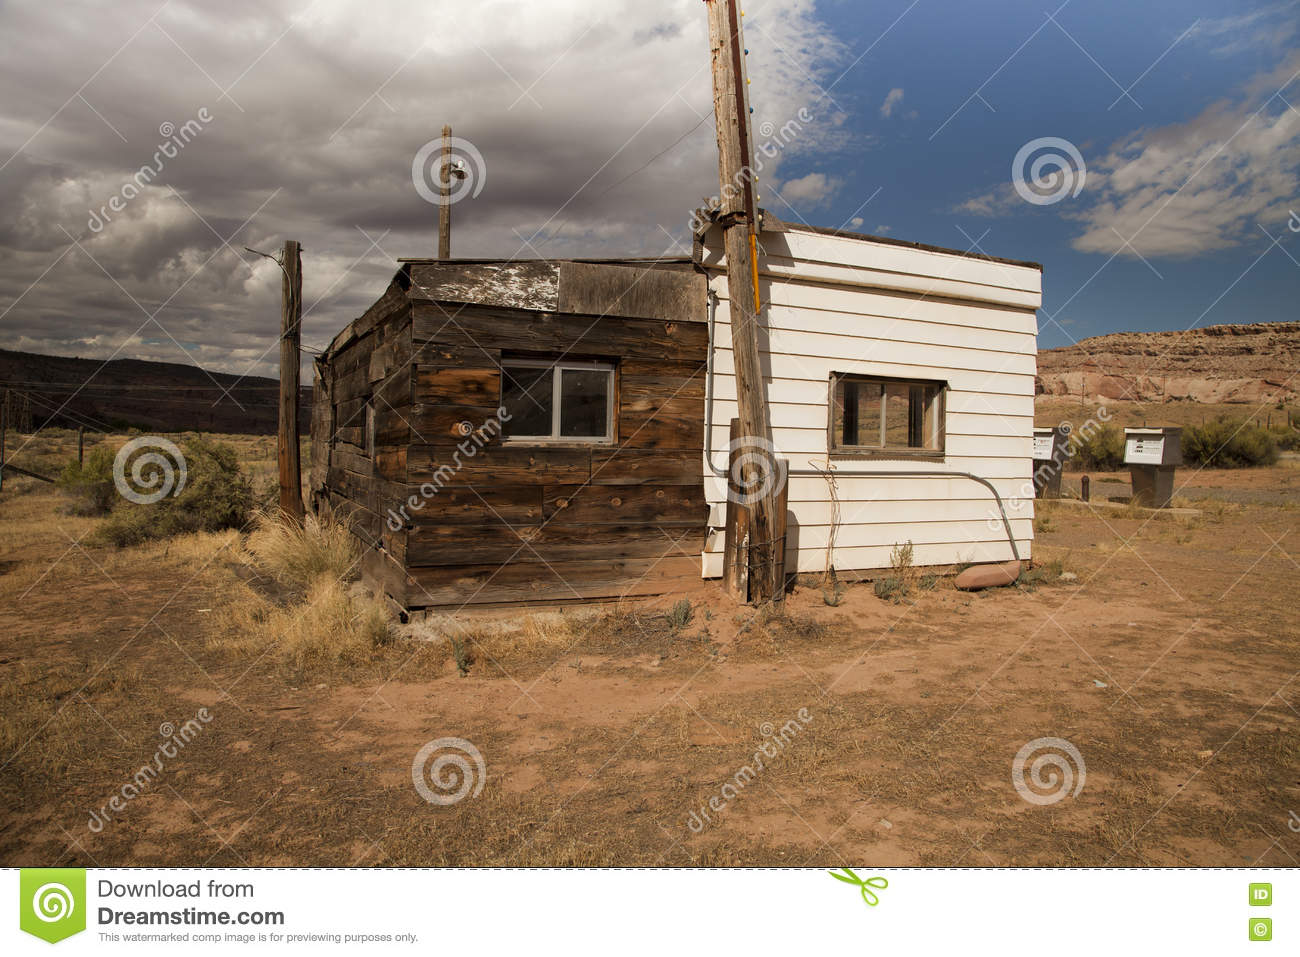 Abandoned Gas Station Stock Photo Image Of Ghost Desert 79613112